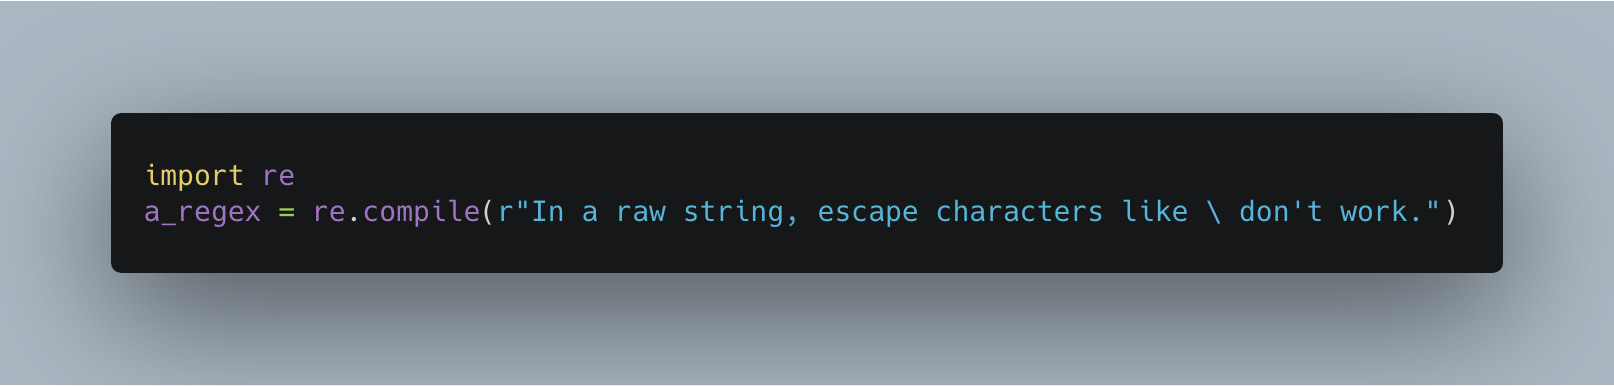 But beware, even a raw string can't consist **entirely** of a single backslash.